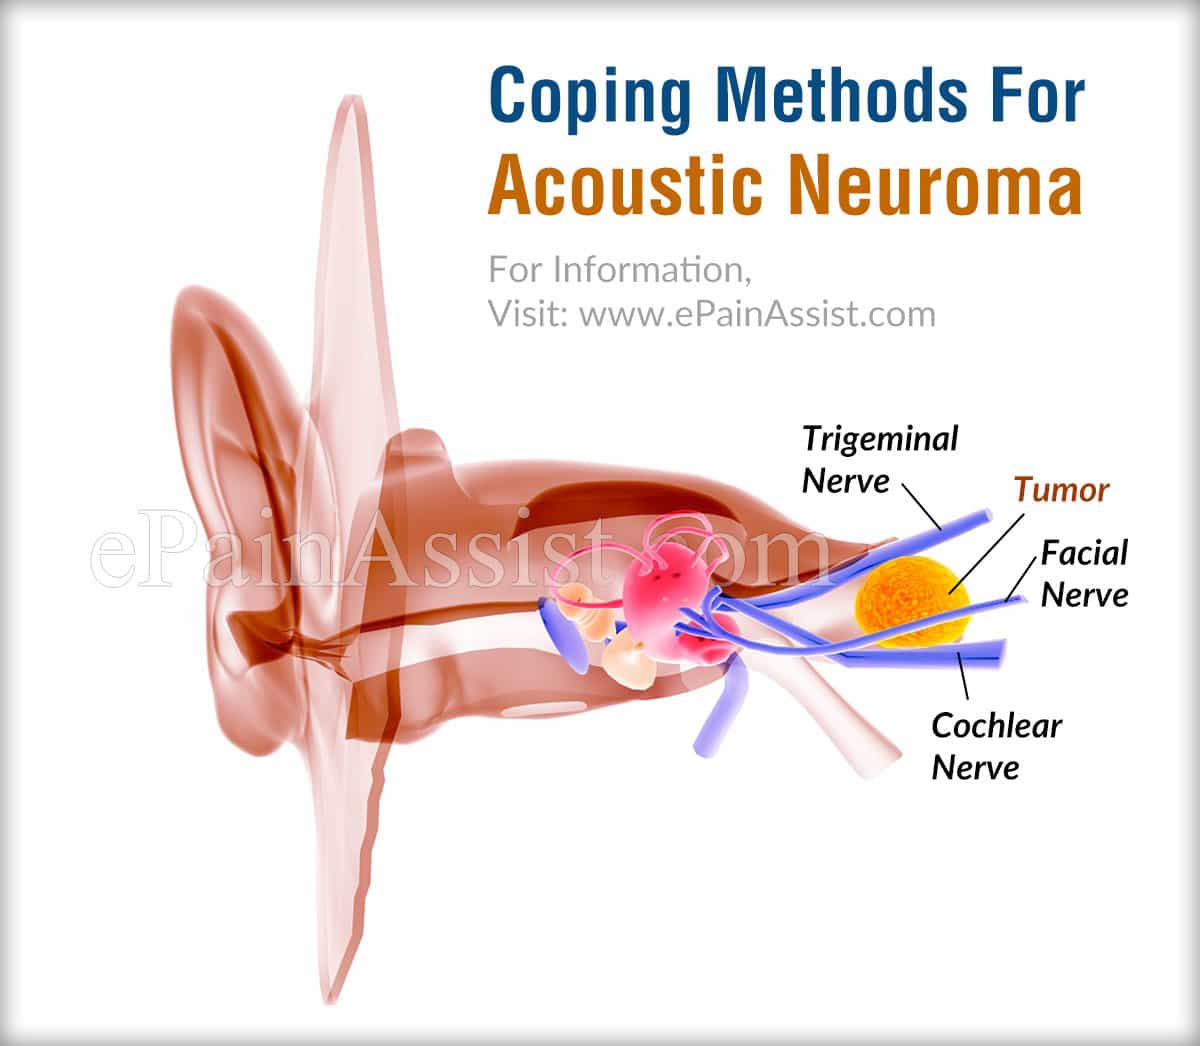 Coping Methods For Acoustic Neuroma